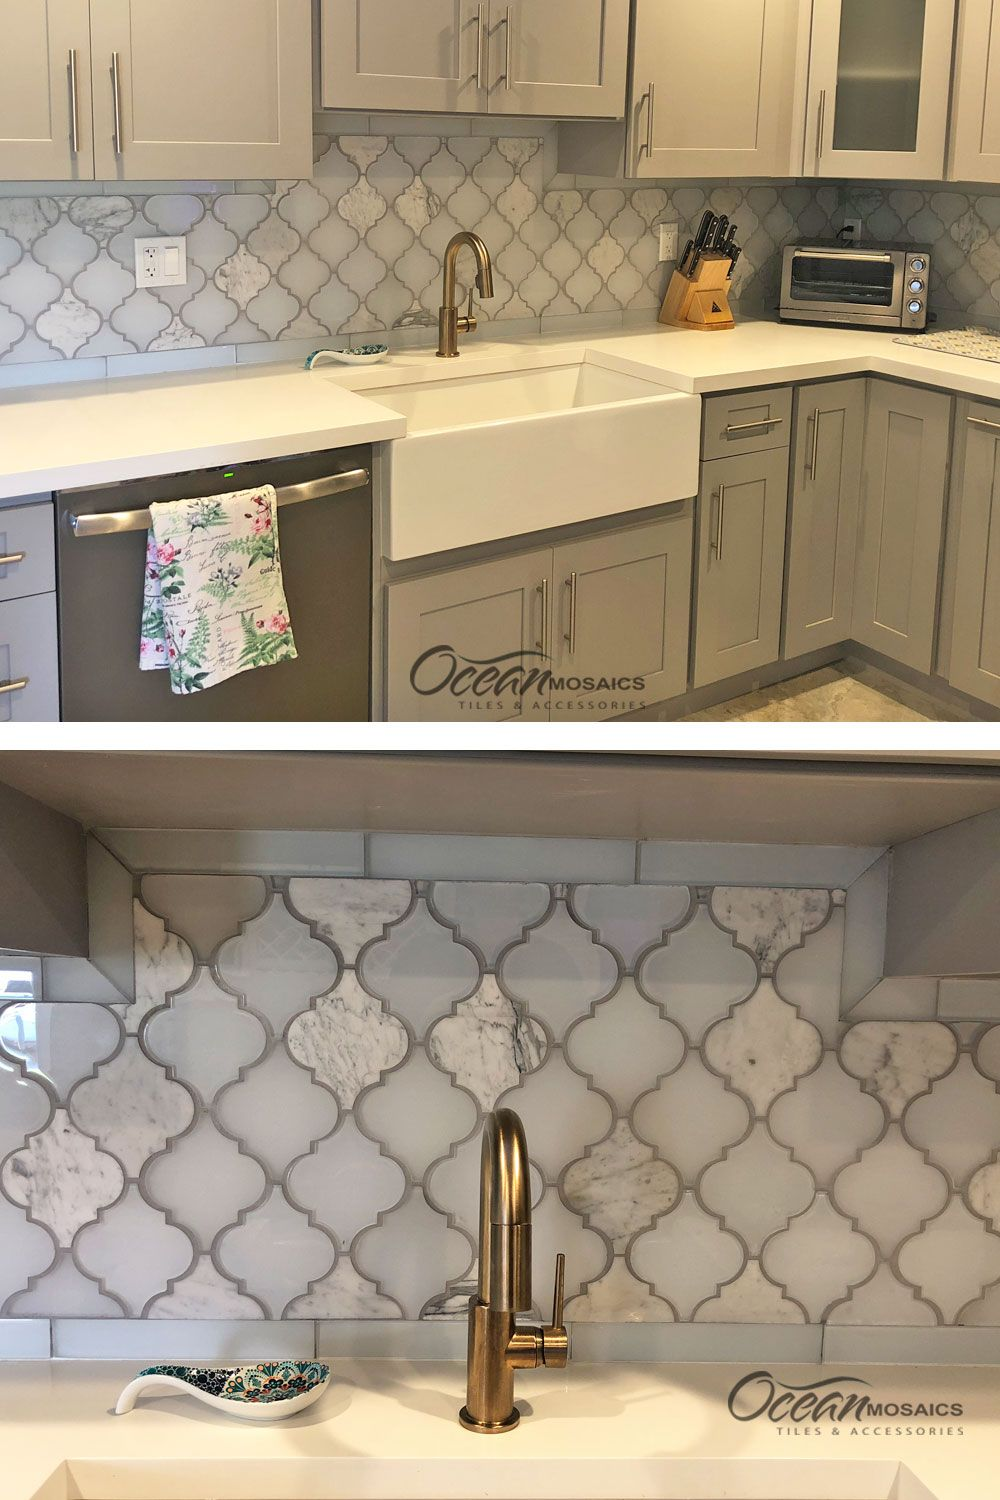 Adding A Darker Color Grout To Exquisite Arabesque Tile Makes For